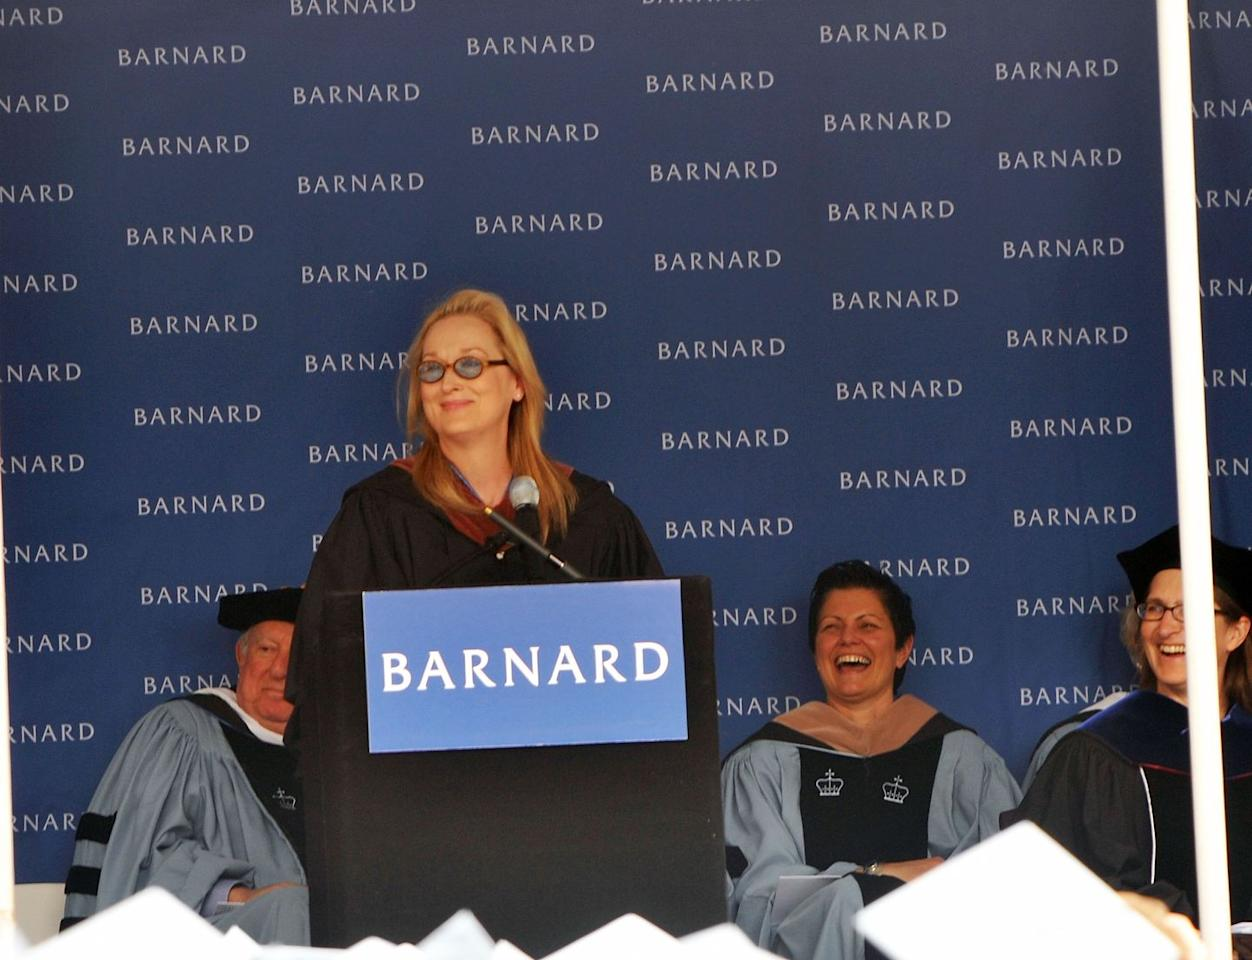 """<p>Streep has spoken at several colleges throughout her career, but one speech that stands out is her <a href=""""https://www.graduationwisdom.com/speeches/0069-streep.htm"""" target=""""_blank"""">commencement speech at Barnard College</a> in 2010. It was at once inspiring, motivational, and funny, with memorable quotes such as: """"You know you don't have to be famous. You just have to make your mother and father proud of you and you already have.""""  </p>"""